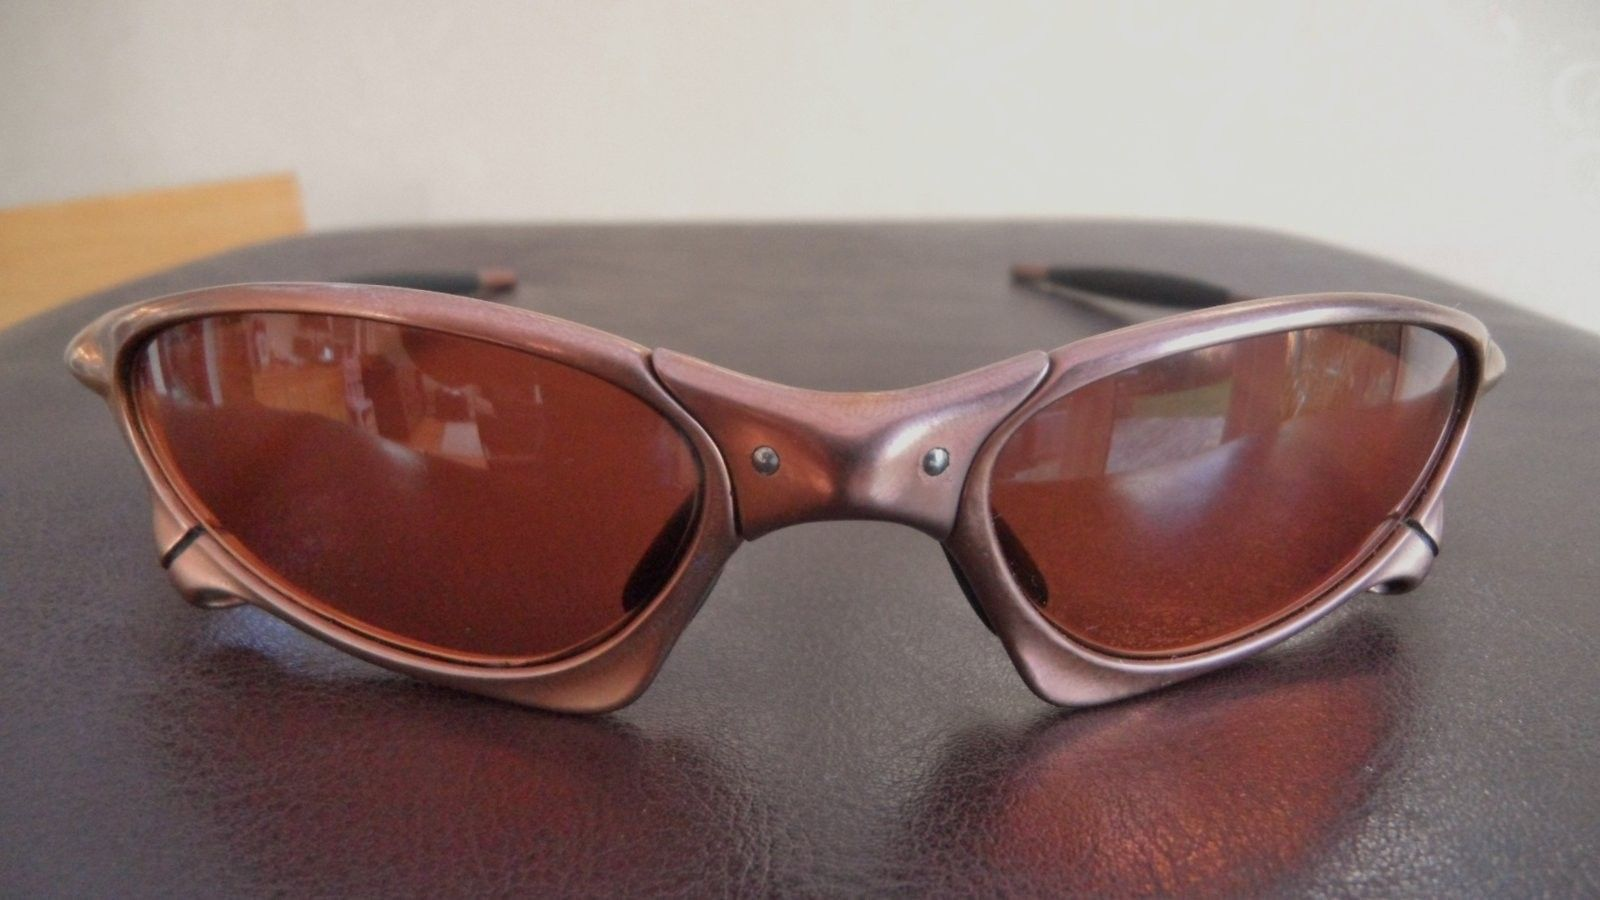 Penny Copper with VR28 lenses. Correctly Labelled Box but wrong serial. - SAM_0001.JPG